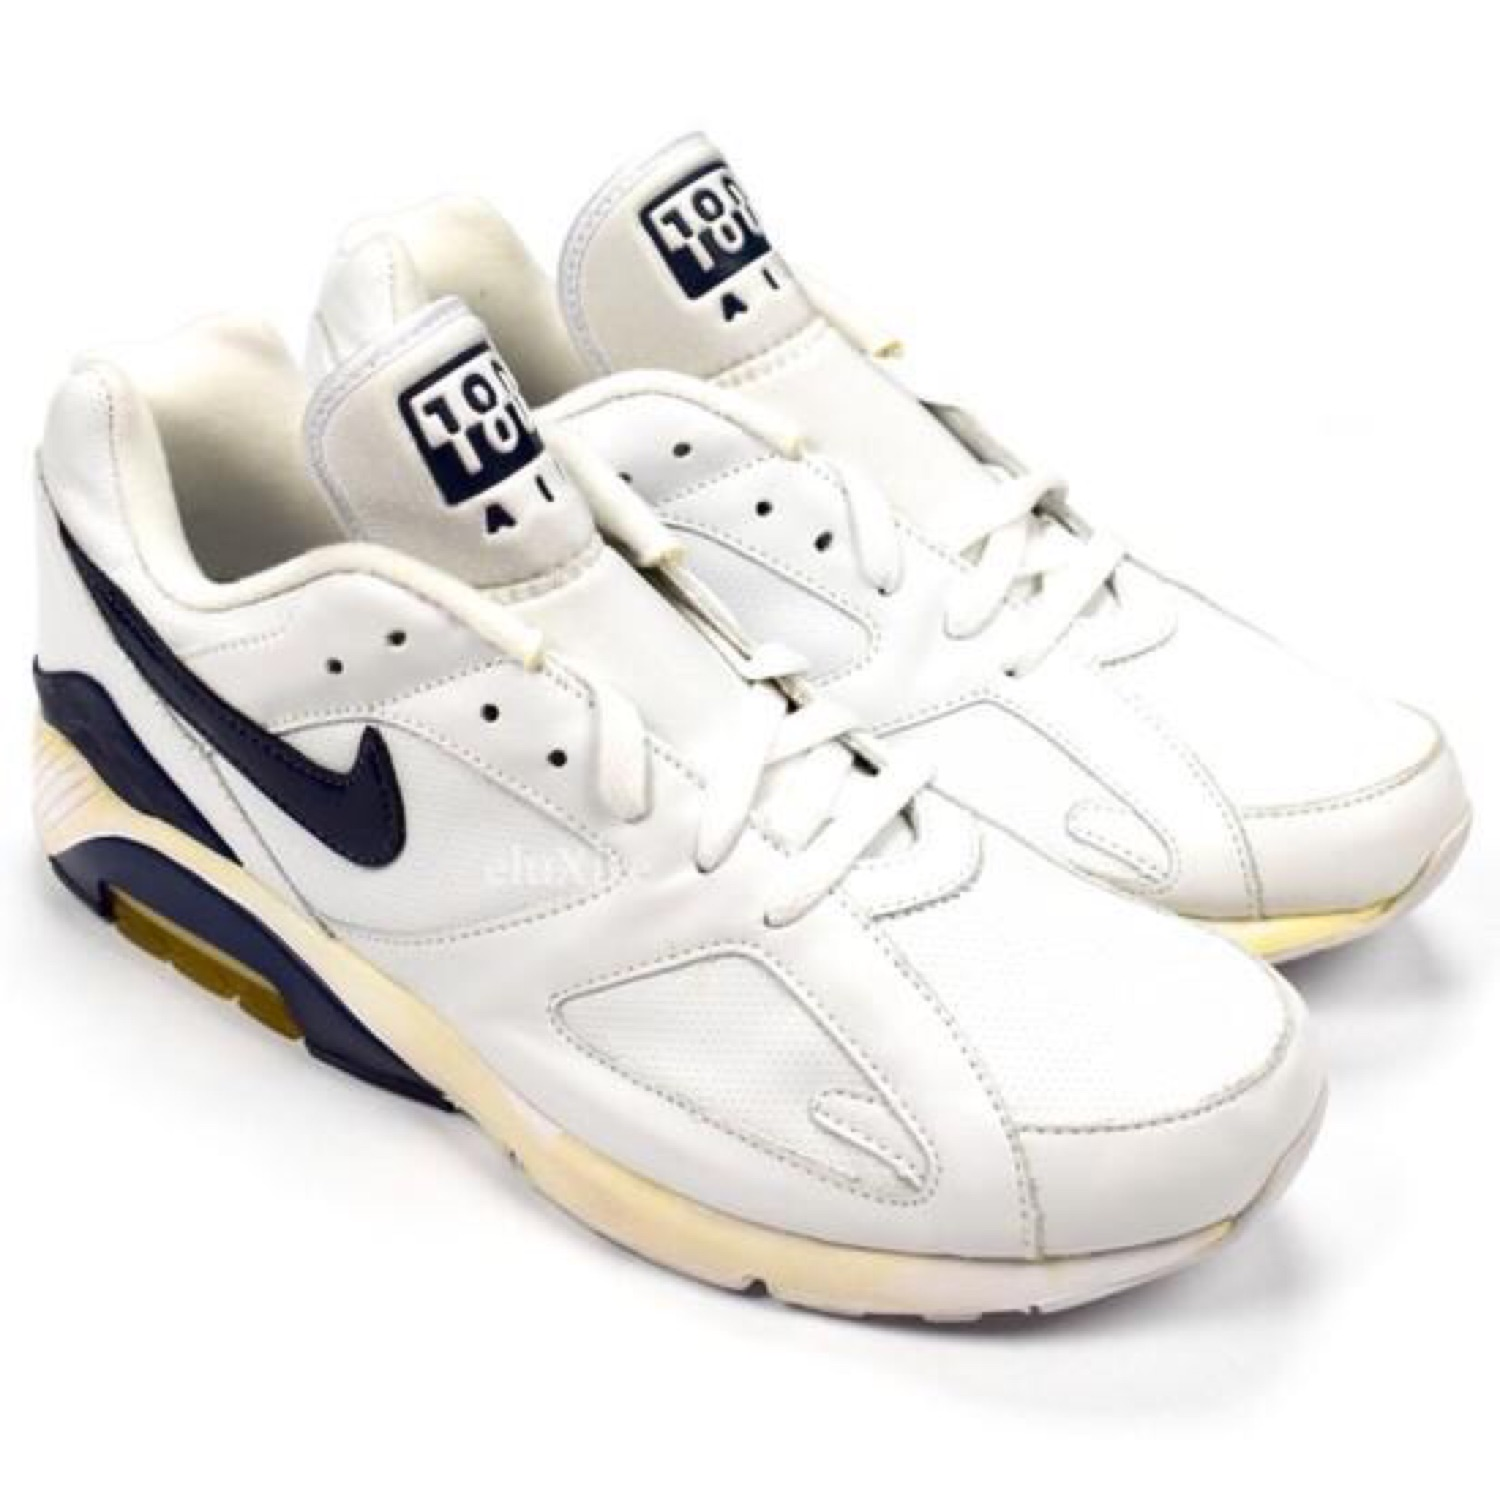 Nike Air Max 180 White / Navy (2005) Ds